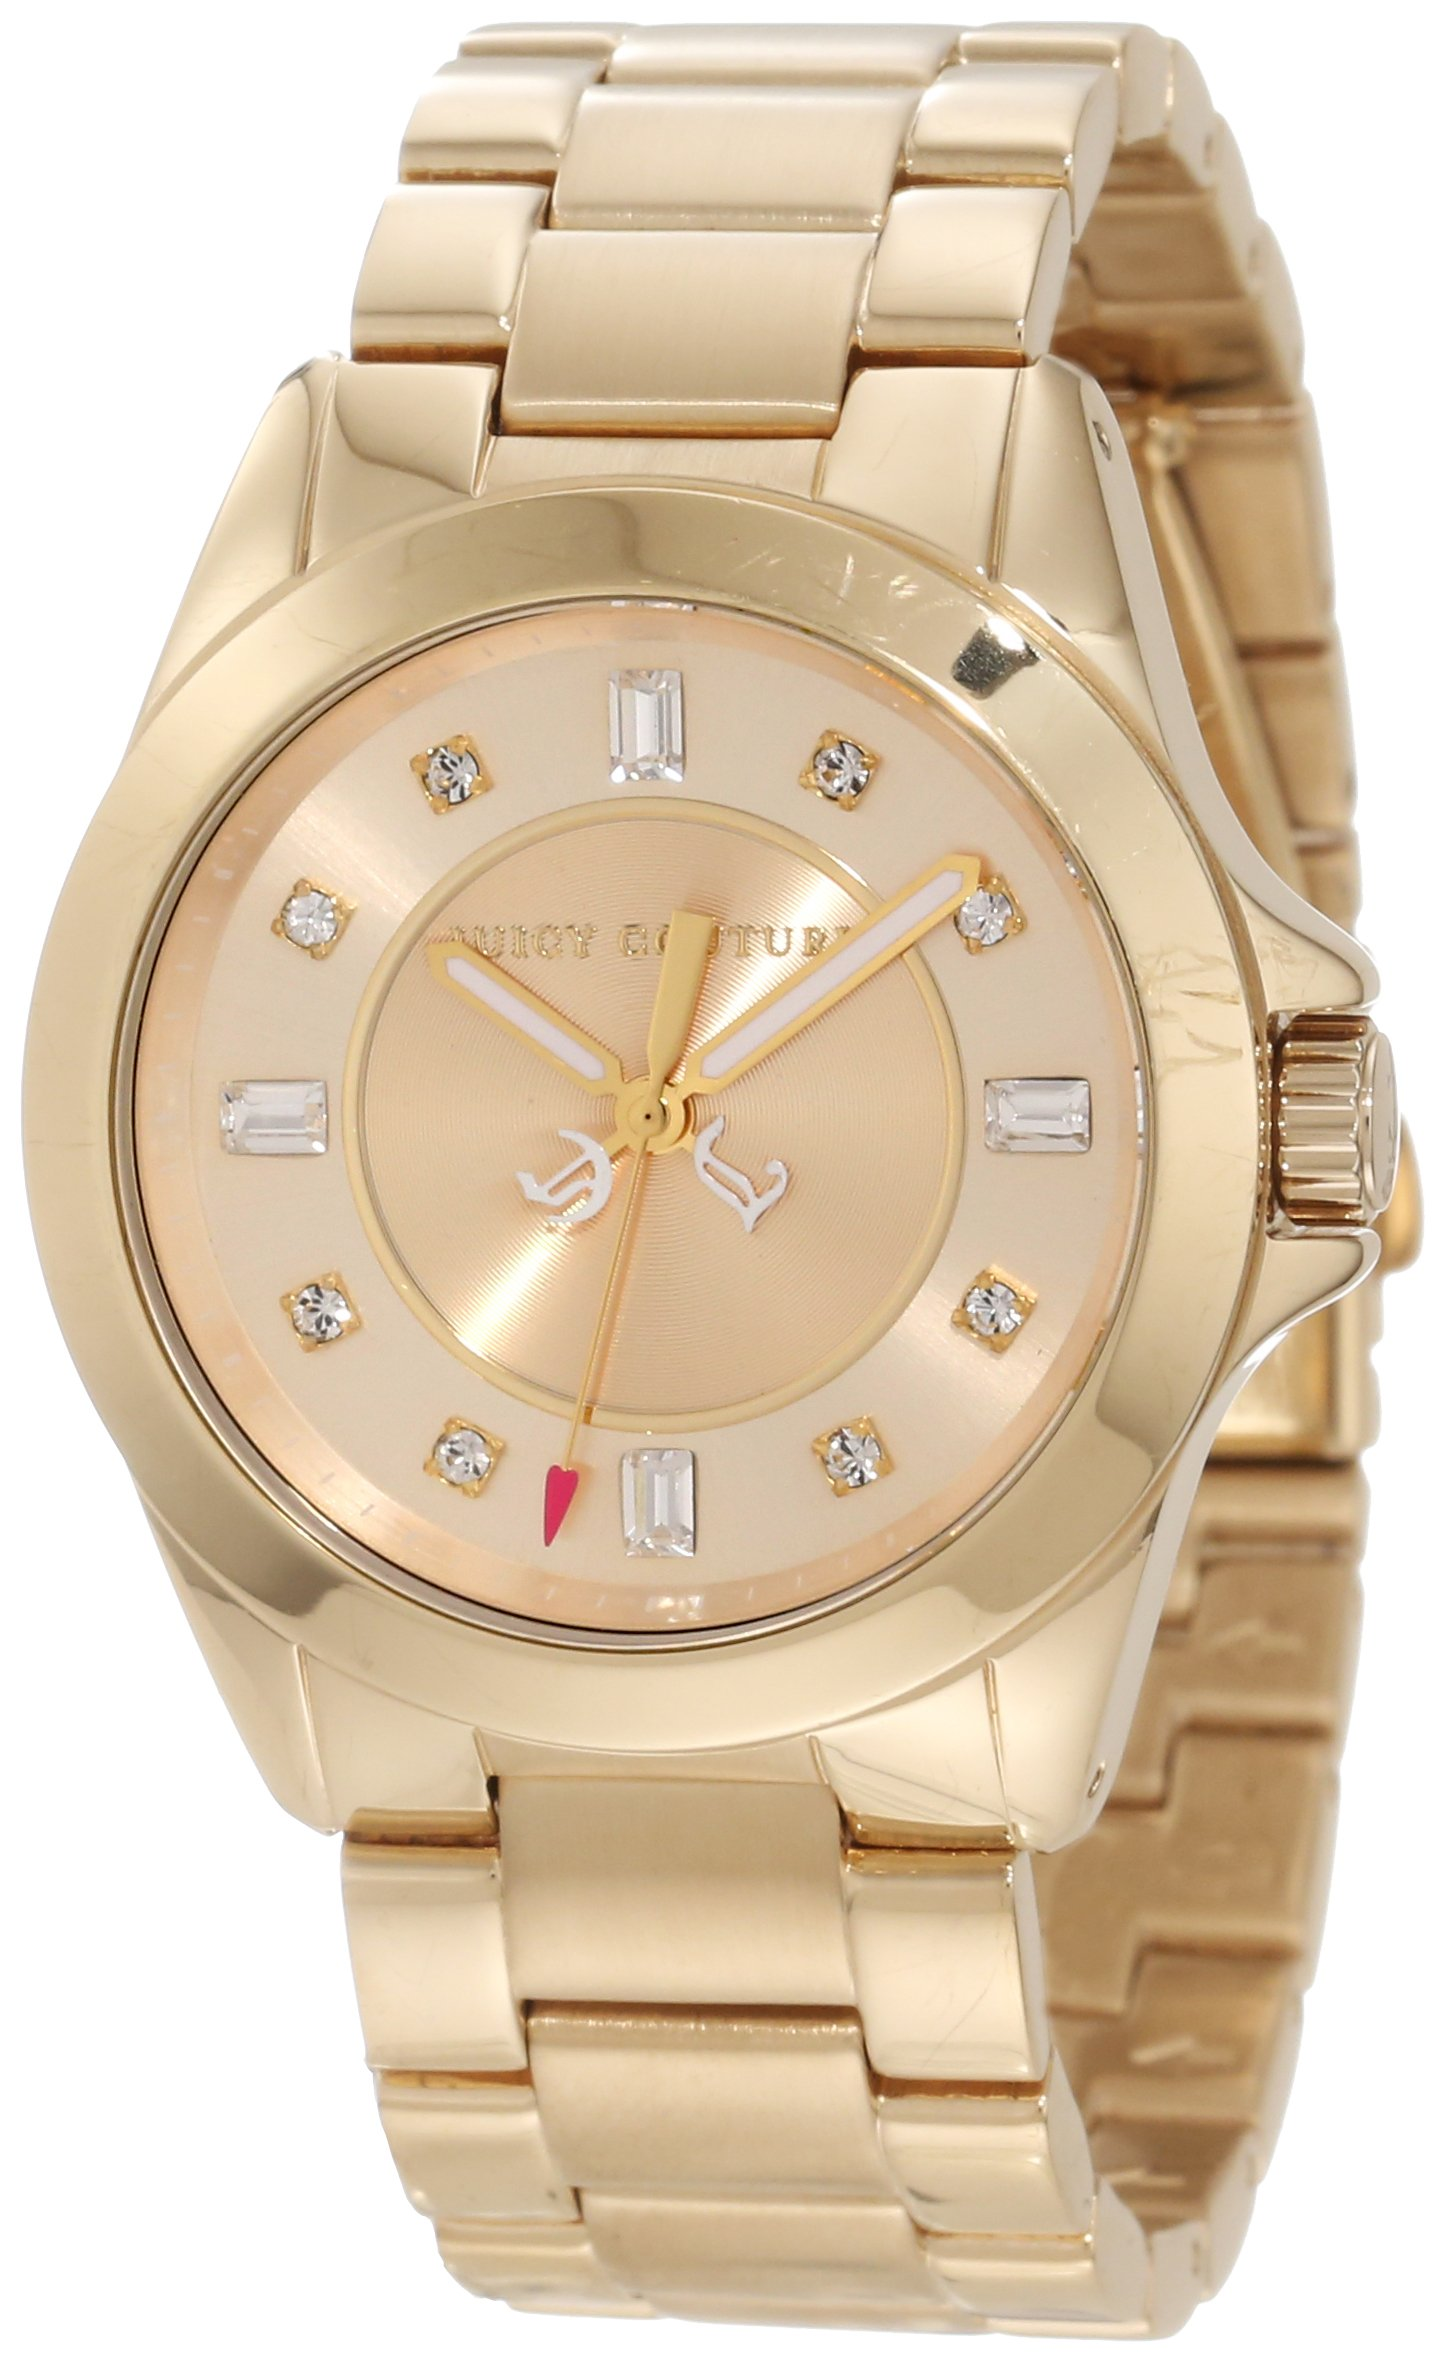 Juicy Couture Women's 1901035 Stella Mini Gold Plated Bracelet Watch